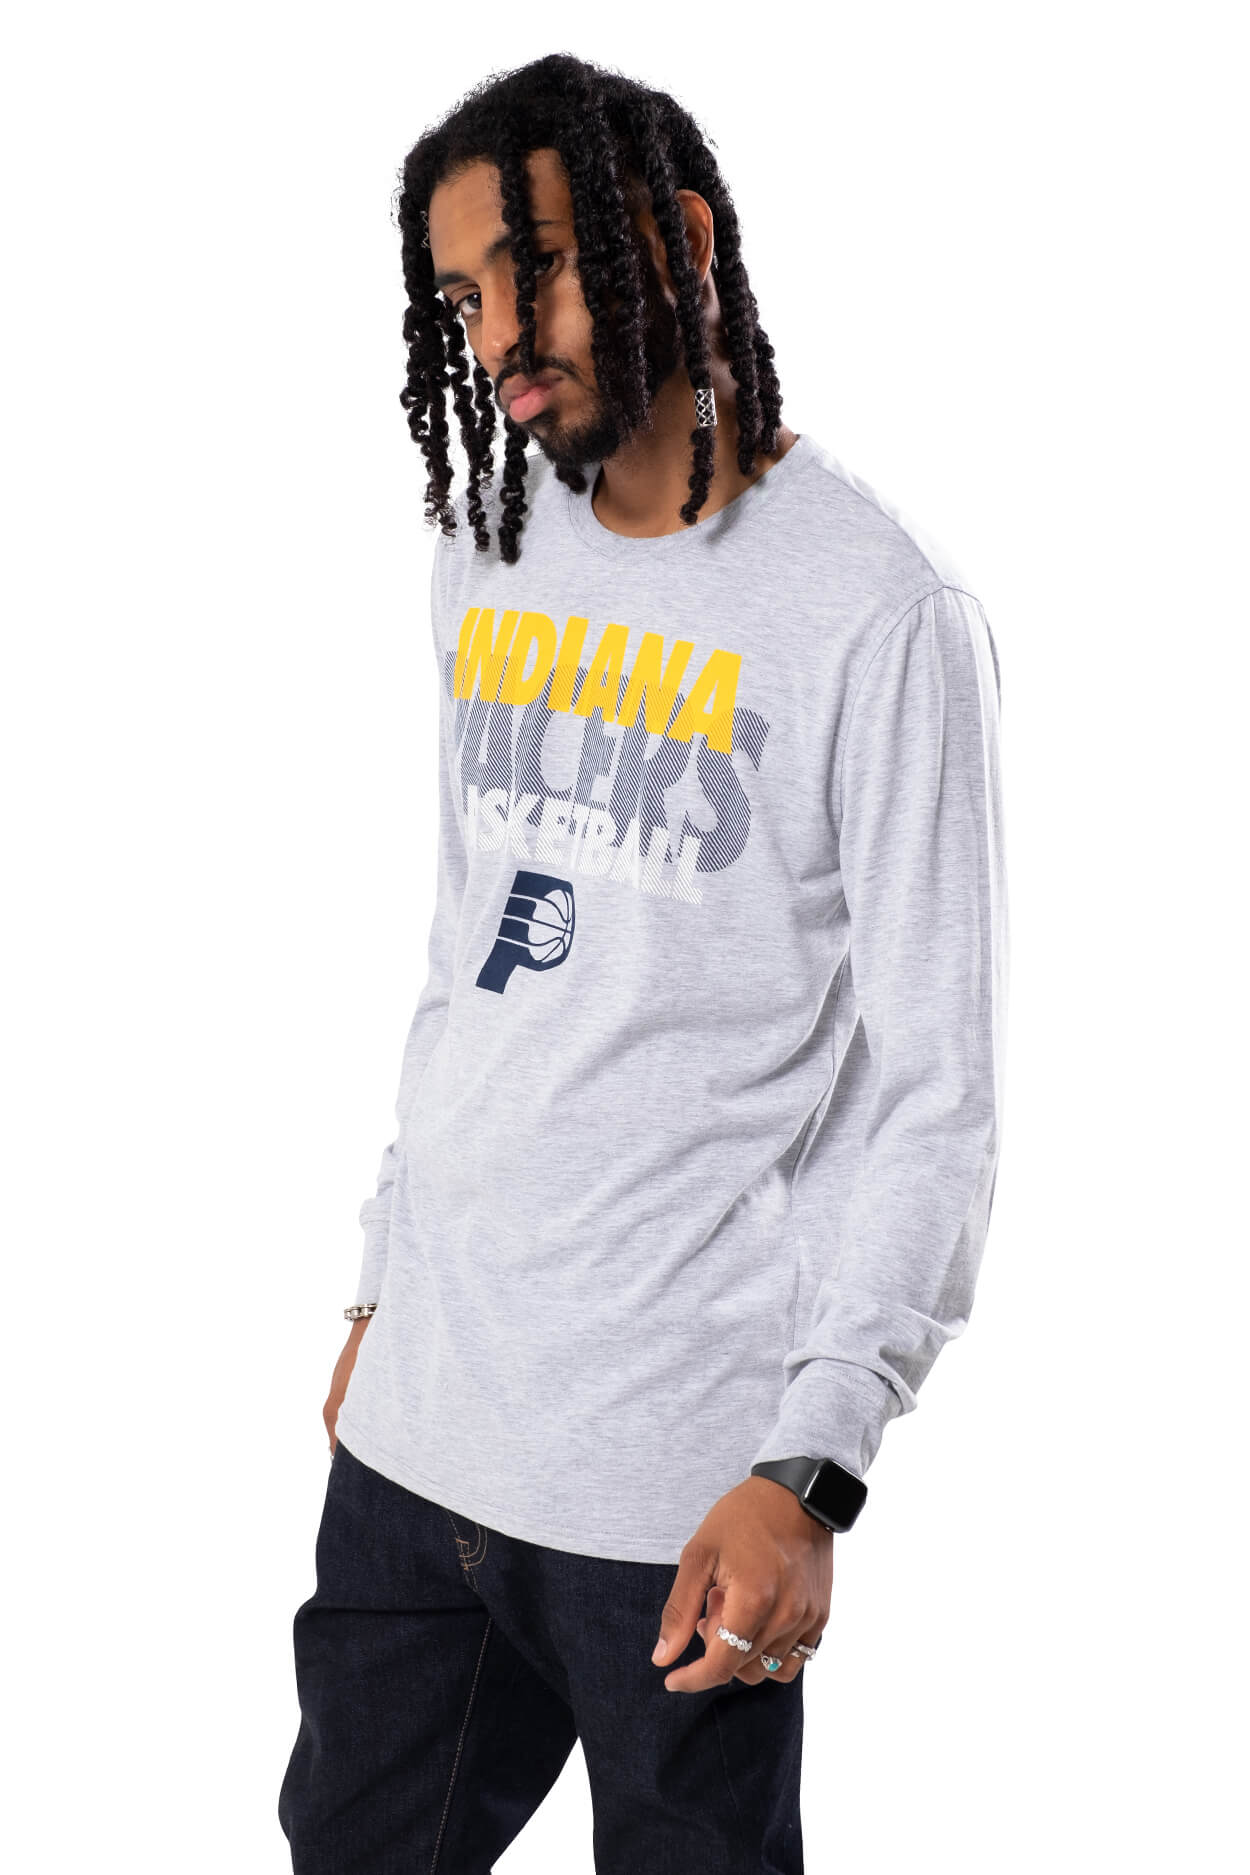 NBA Indiana Pacers Men's Long Sleeve Pullover|Indiana Pacers